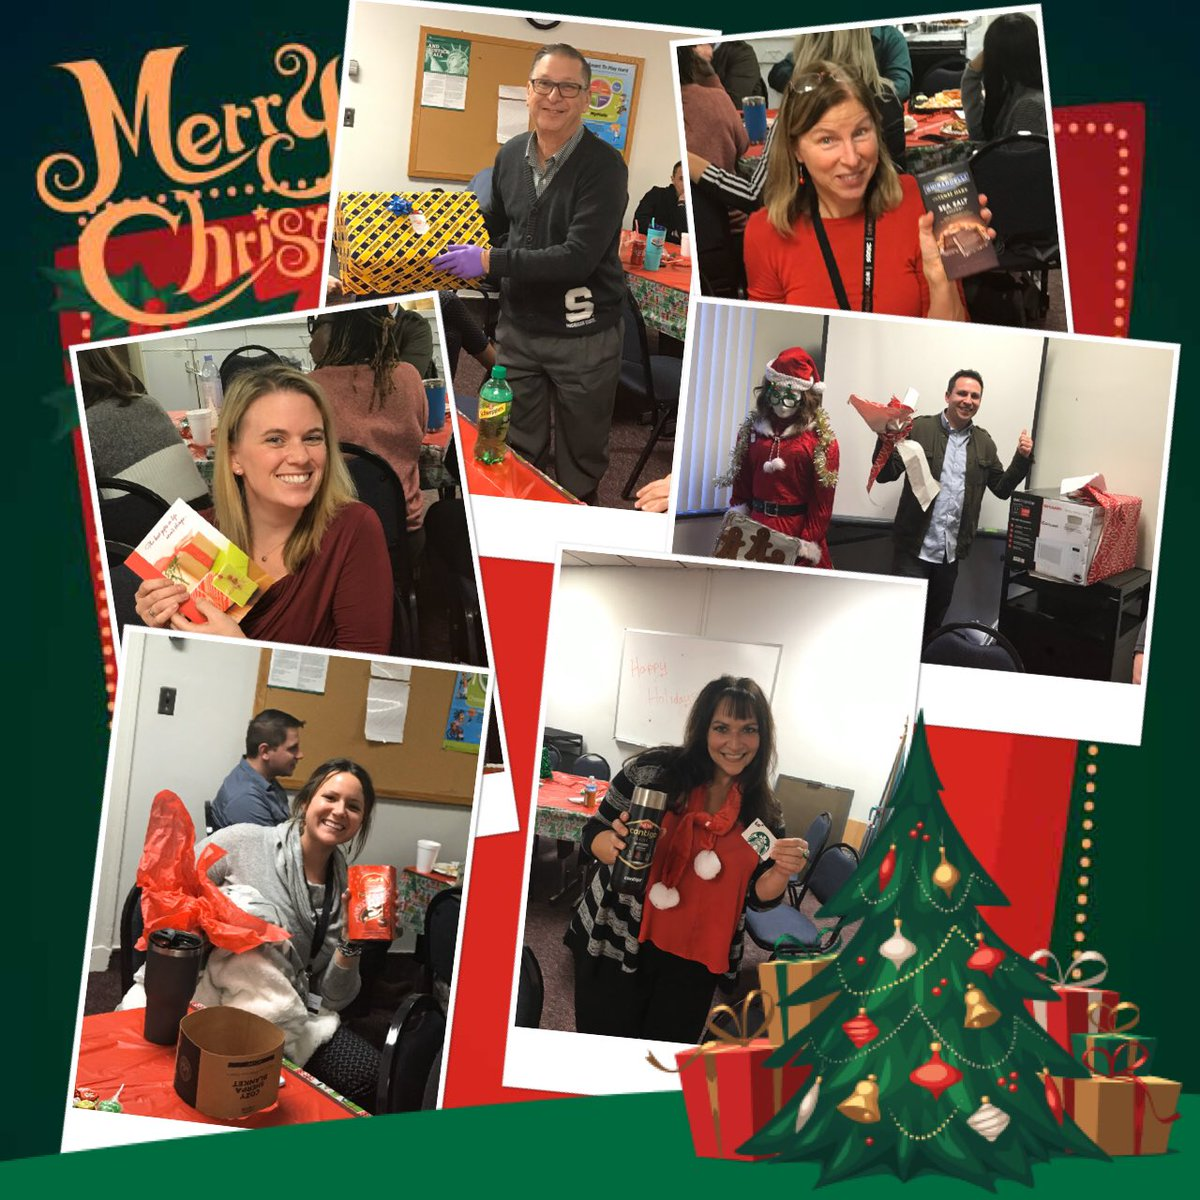 Holiday happenings at QPN. Fun was had by all. @MDOC_QPN @Dietrichb7 https://t.co/6lPf6ETbZ2